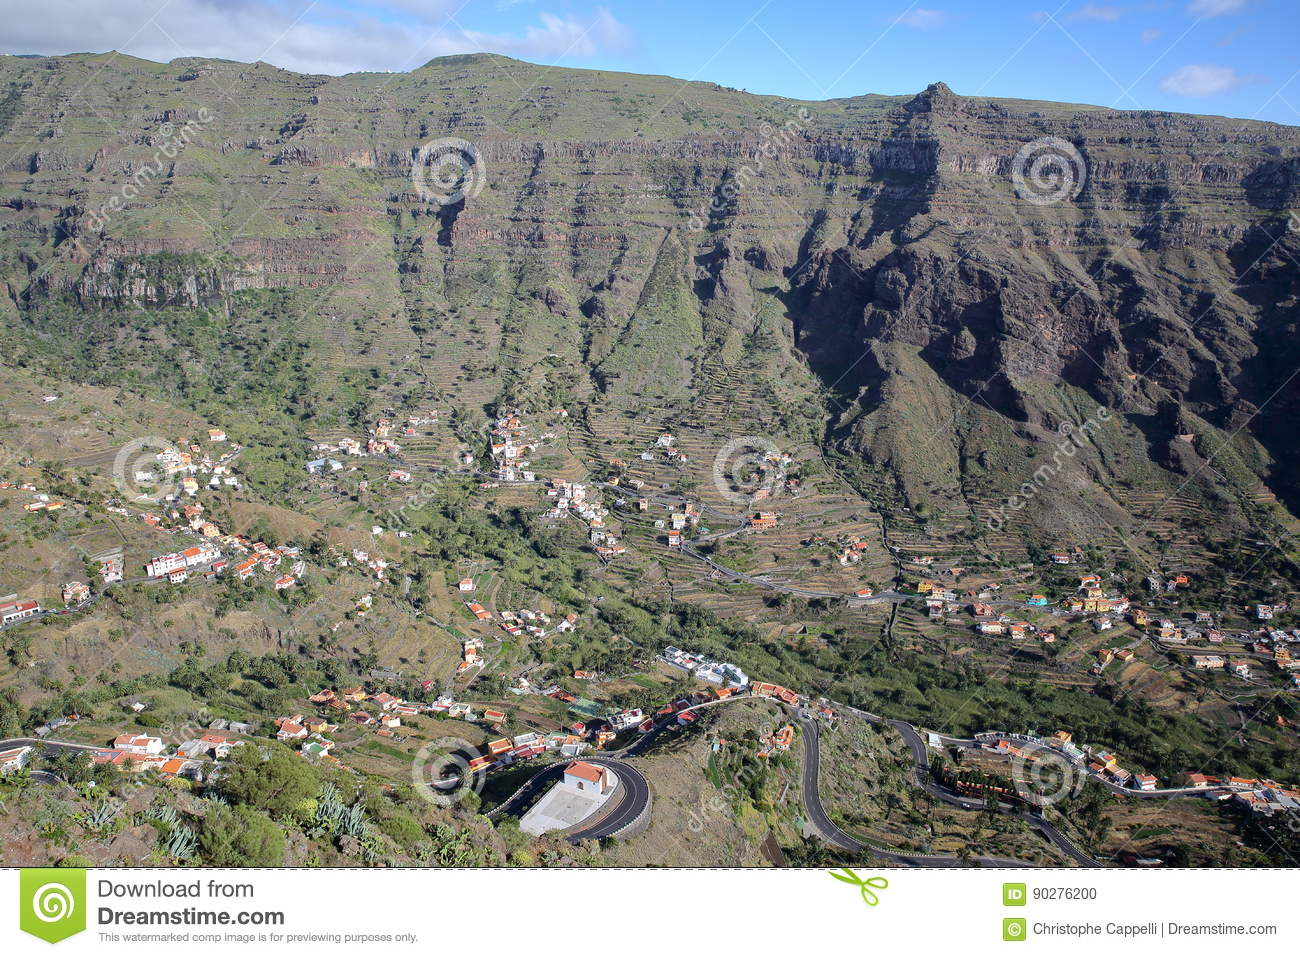 VALLE GRAN REY, LA GOMERA, SPAIN: General view of the valley with terraced fields and mountains. Winding road in the foreground